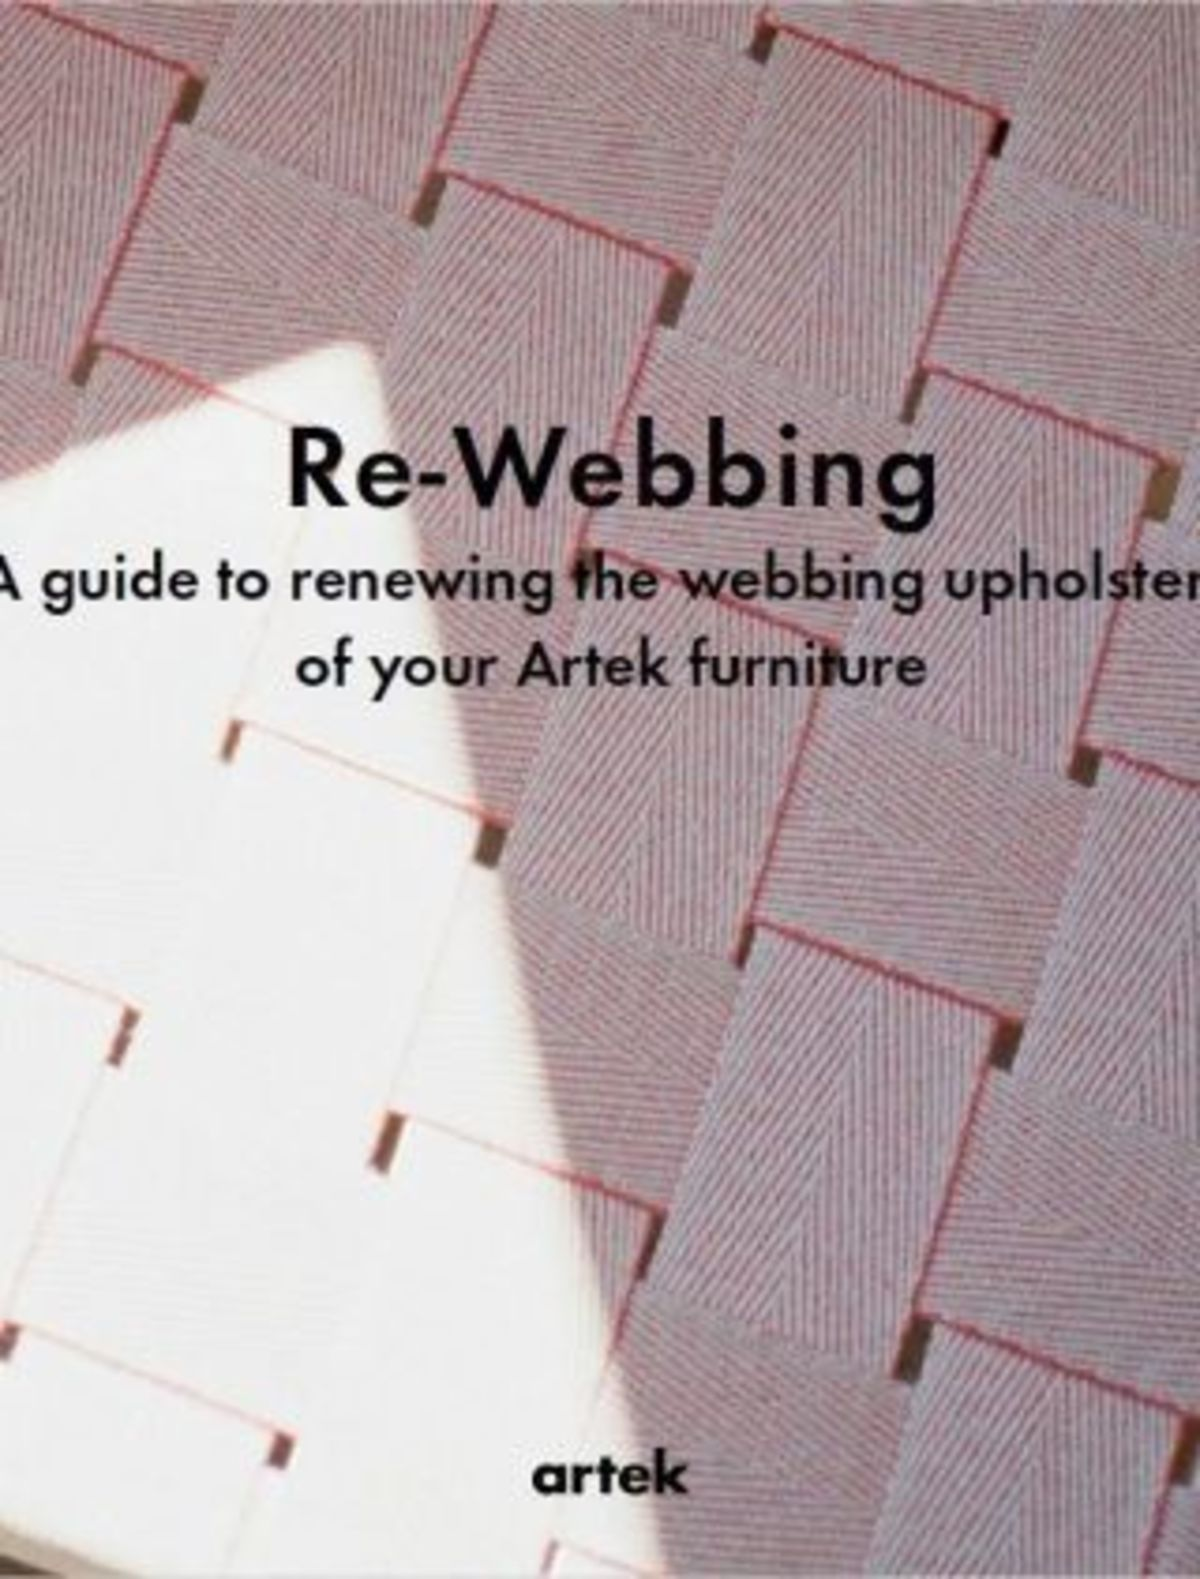 Re-webbing_guide_fall_back_image